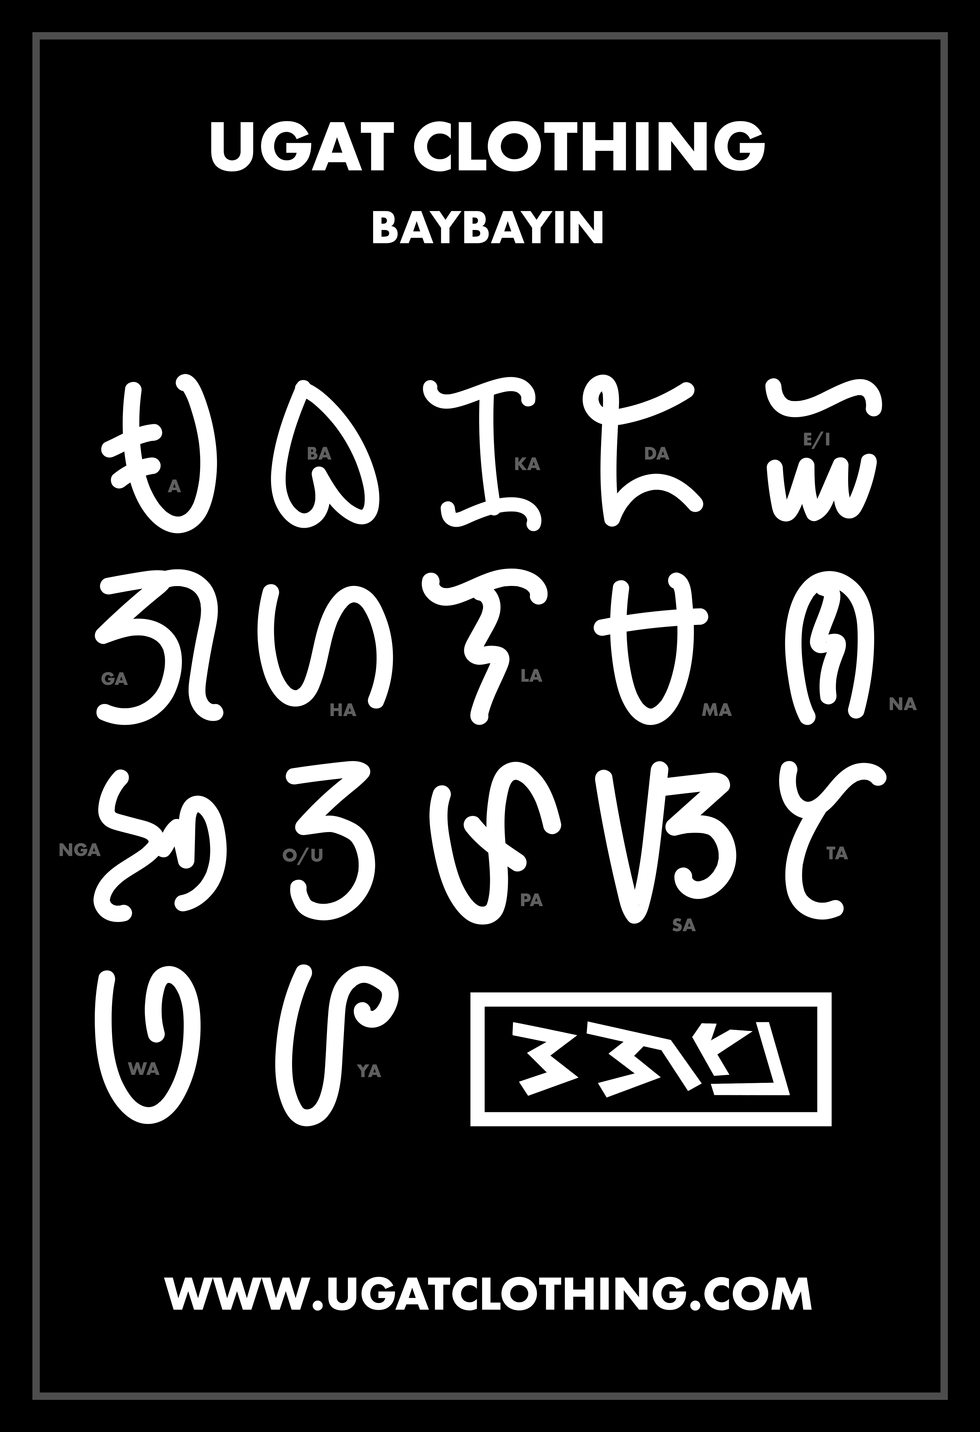 Writing the 17 Characters of the Baybayin.